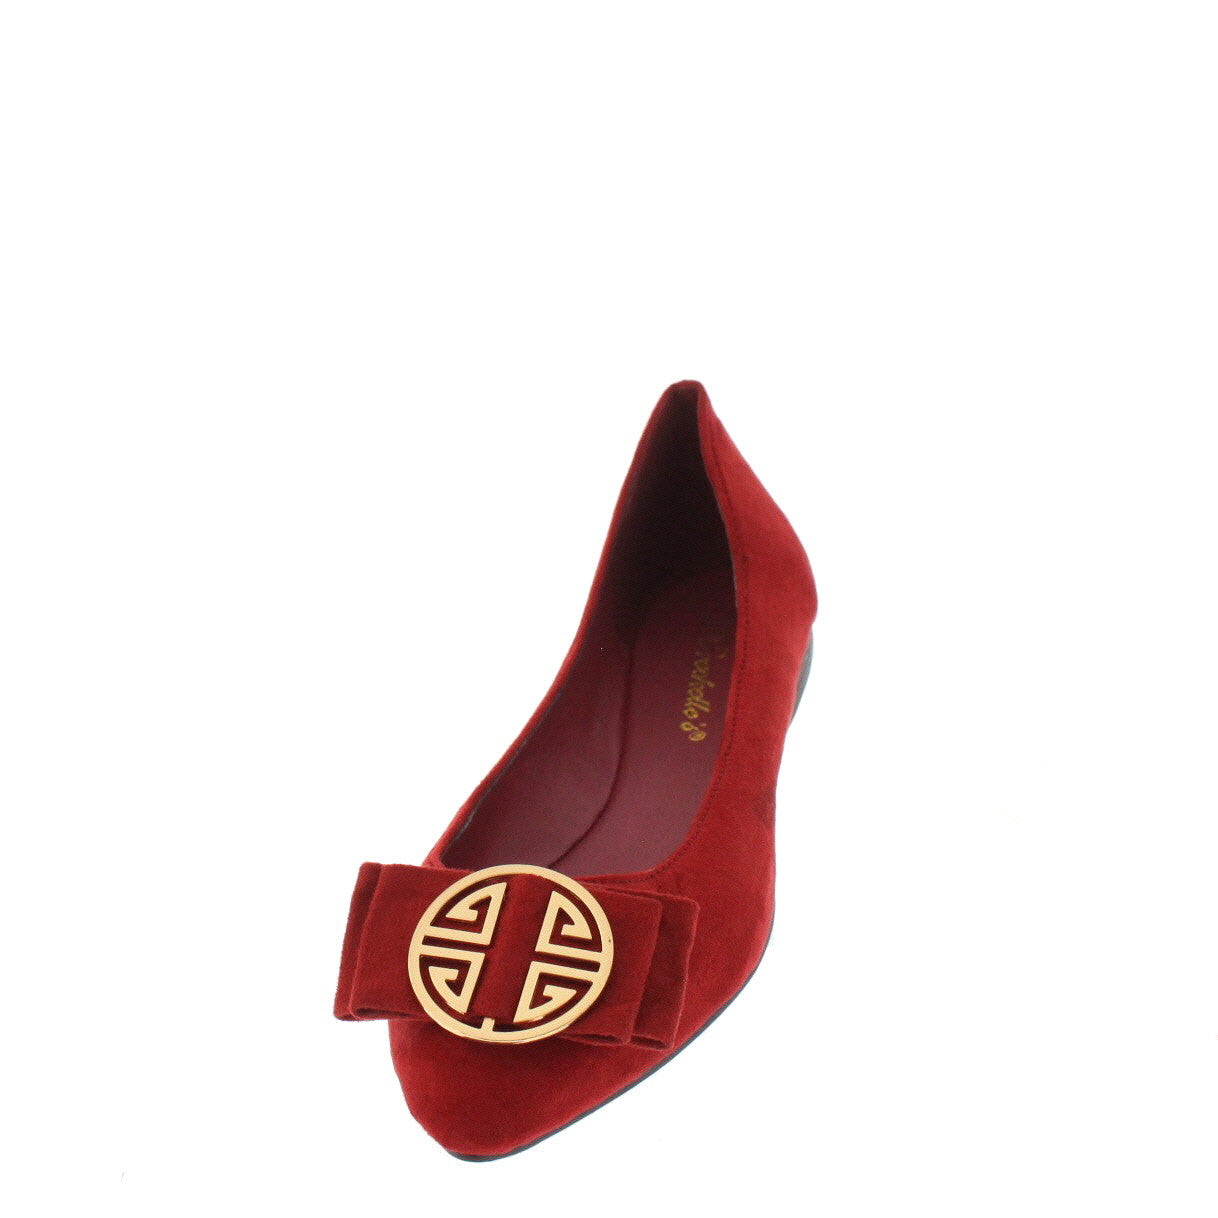 aa22fee6928 Tasha25 Red Bow Emblem Pointed Toe Flat Shoes - Wholesale Fashion Shoes